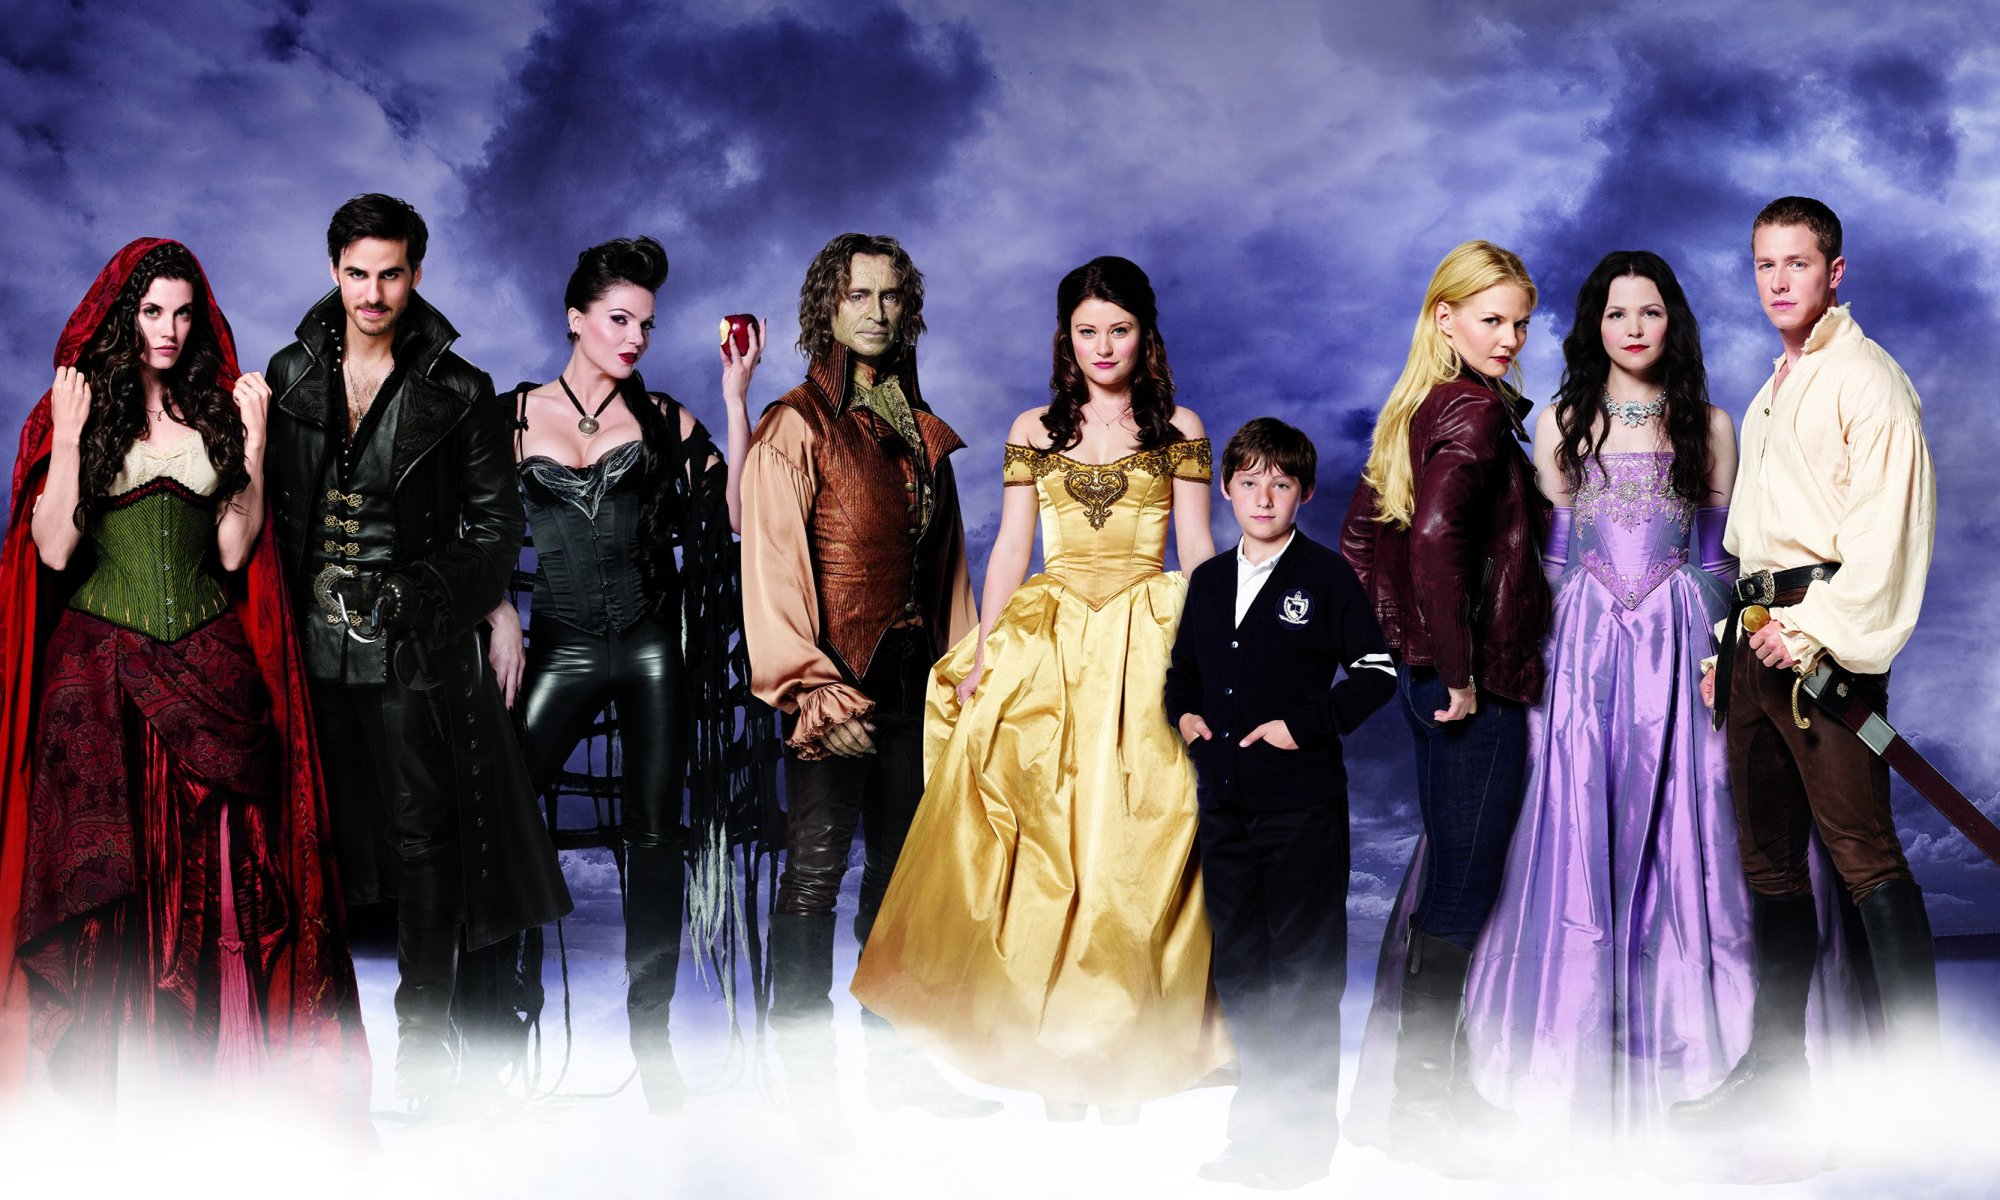 The Cast of Once Upon a Time Season 2